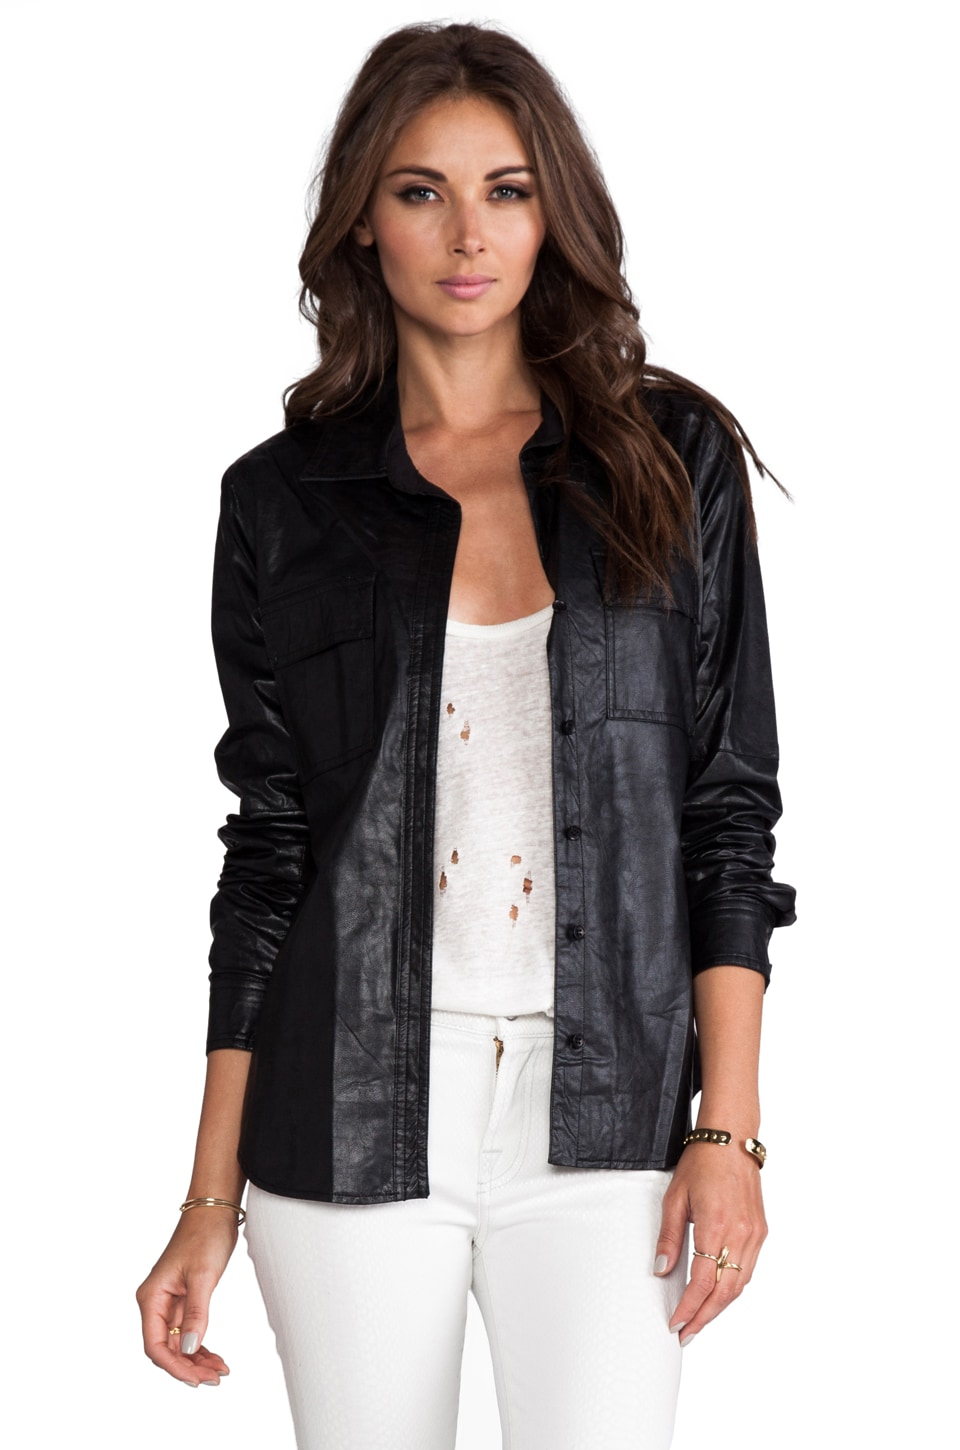 BCBGMAXAZRIA Torey Vegan Leather Jacket in Black